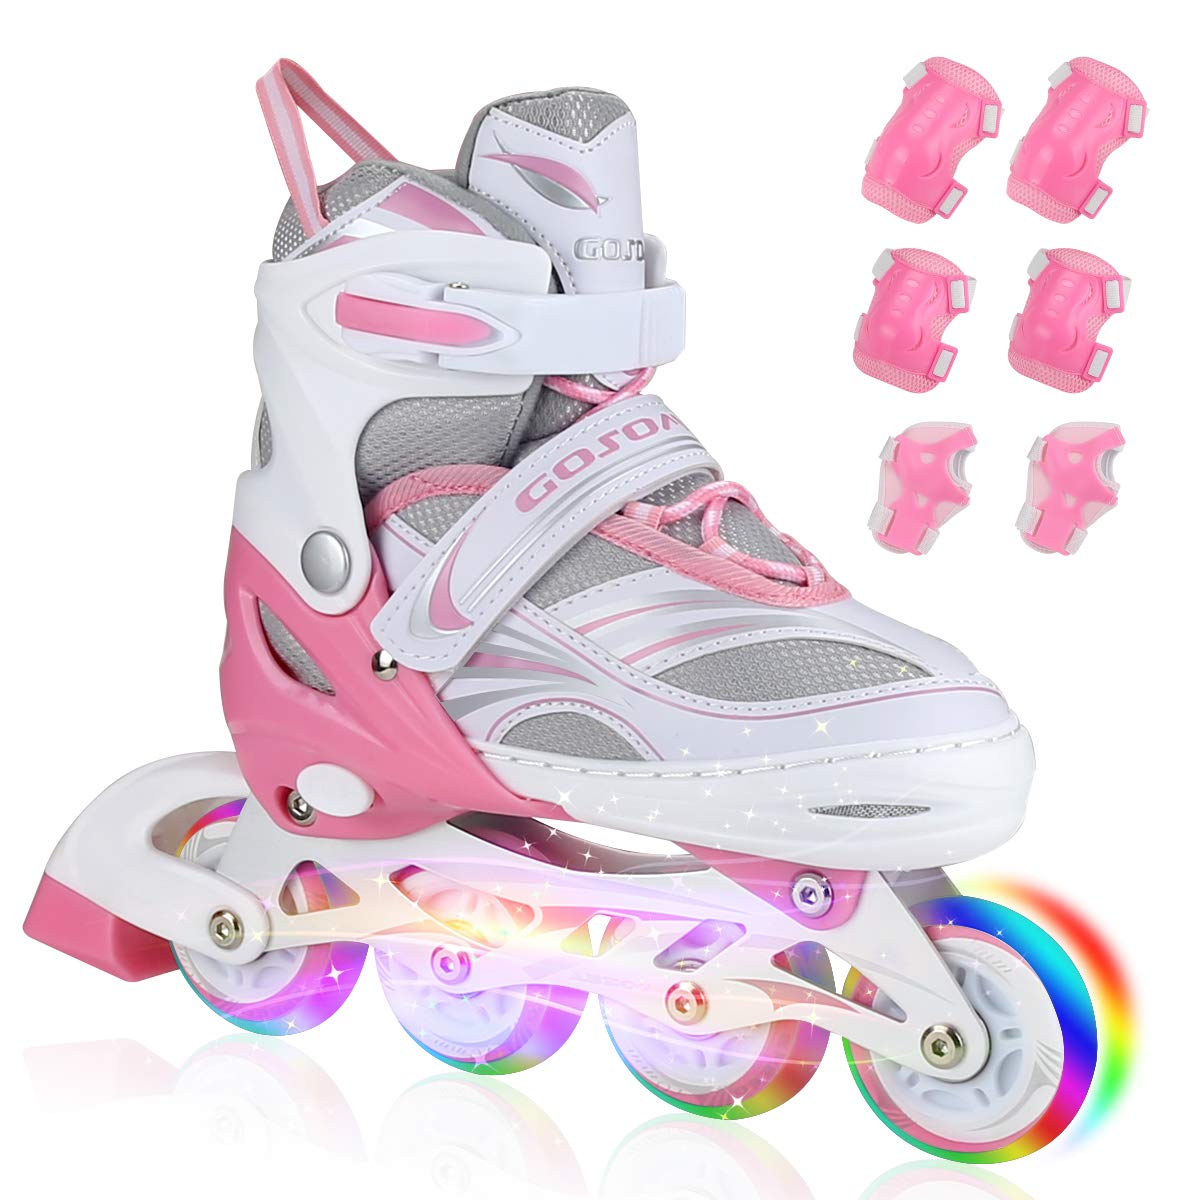 PETUOL Kids Inline Skates, Adjustable and Safe Durable Roller Skates with All 8 Full Light Up Illuminating Wheels, Fashionable Outdoor Sport Skates for Girls and Ladies